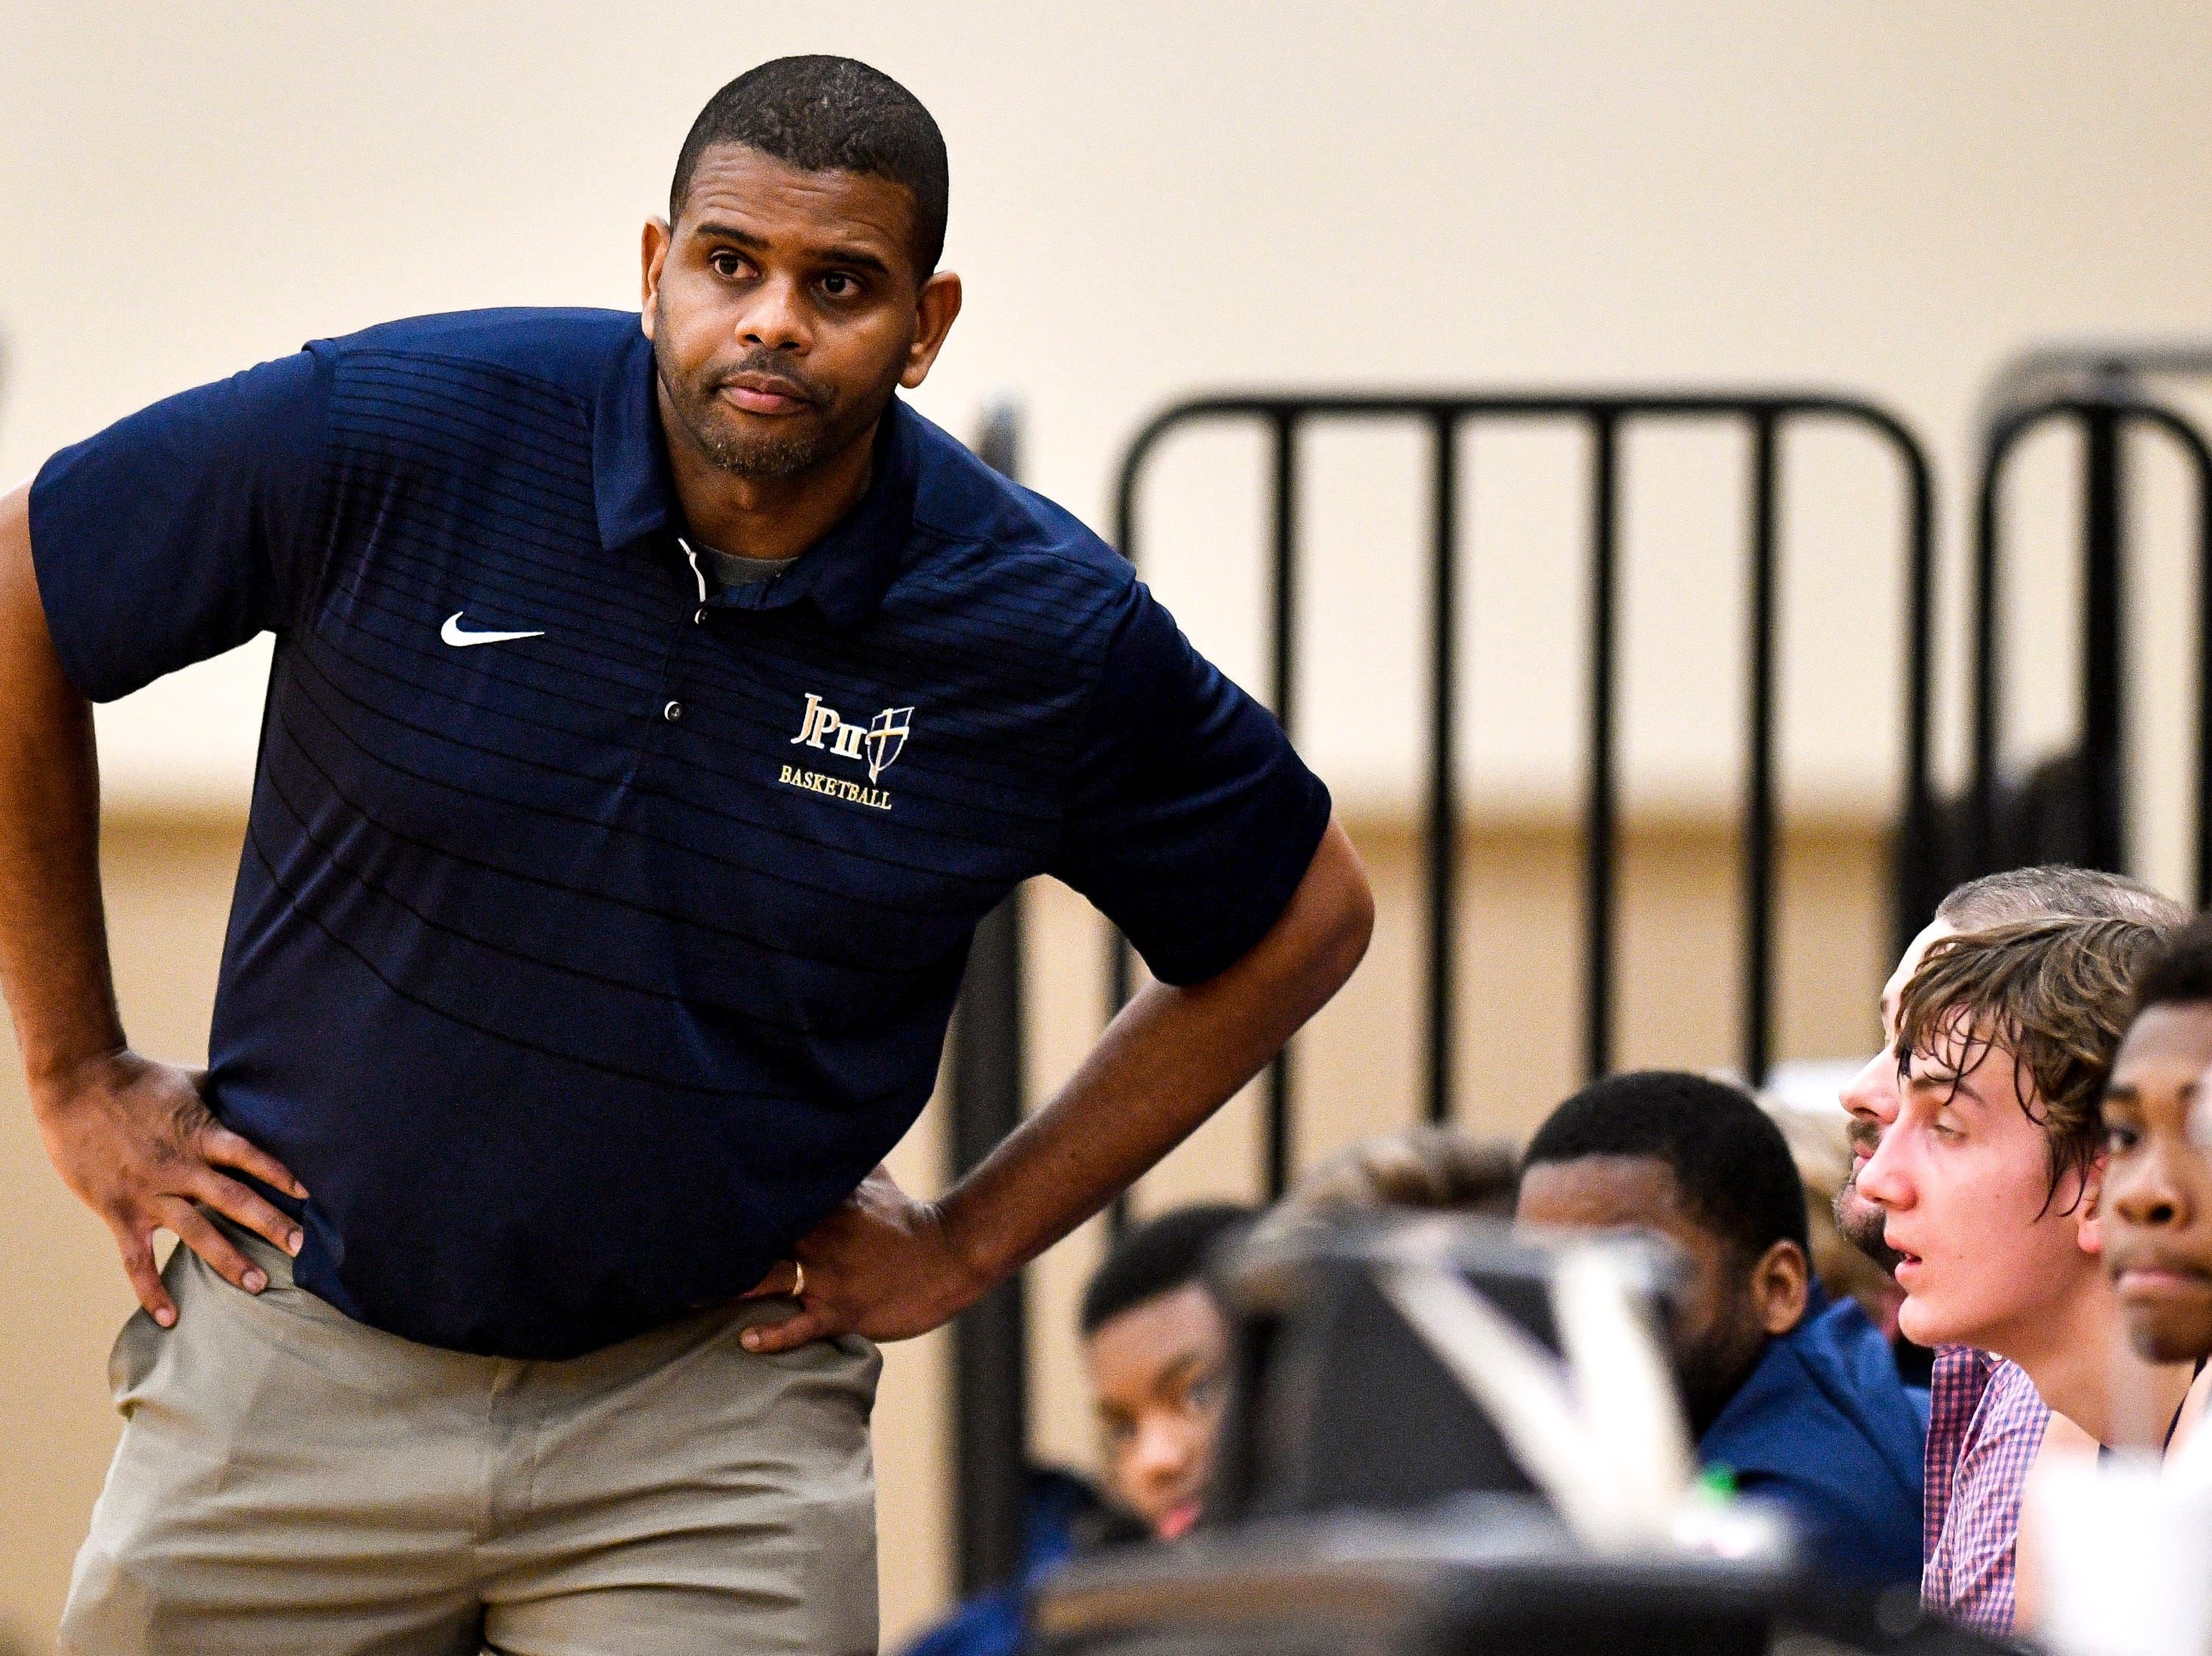 Pope John Paul II head coach Charles Wade watches his team face Brentwood Academy during the second half at Brentwood Academy in Brentwood, Tenn., Friday, Jan. 4, 2019.